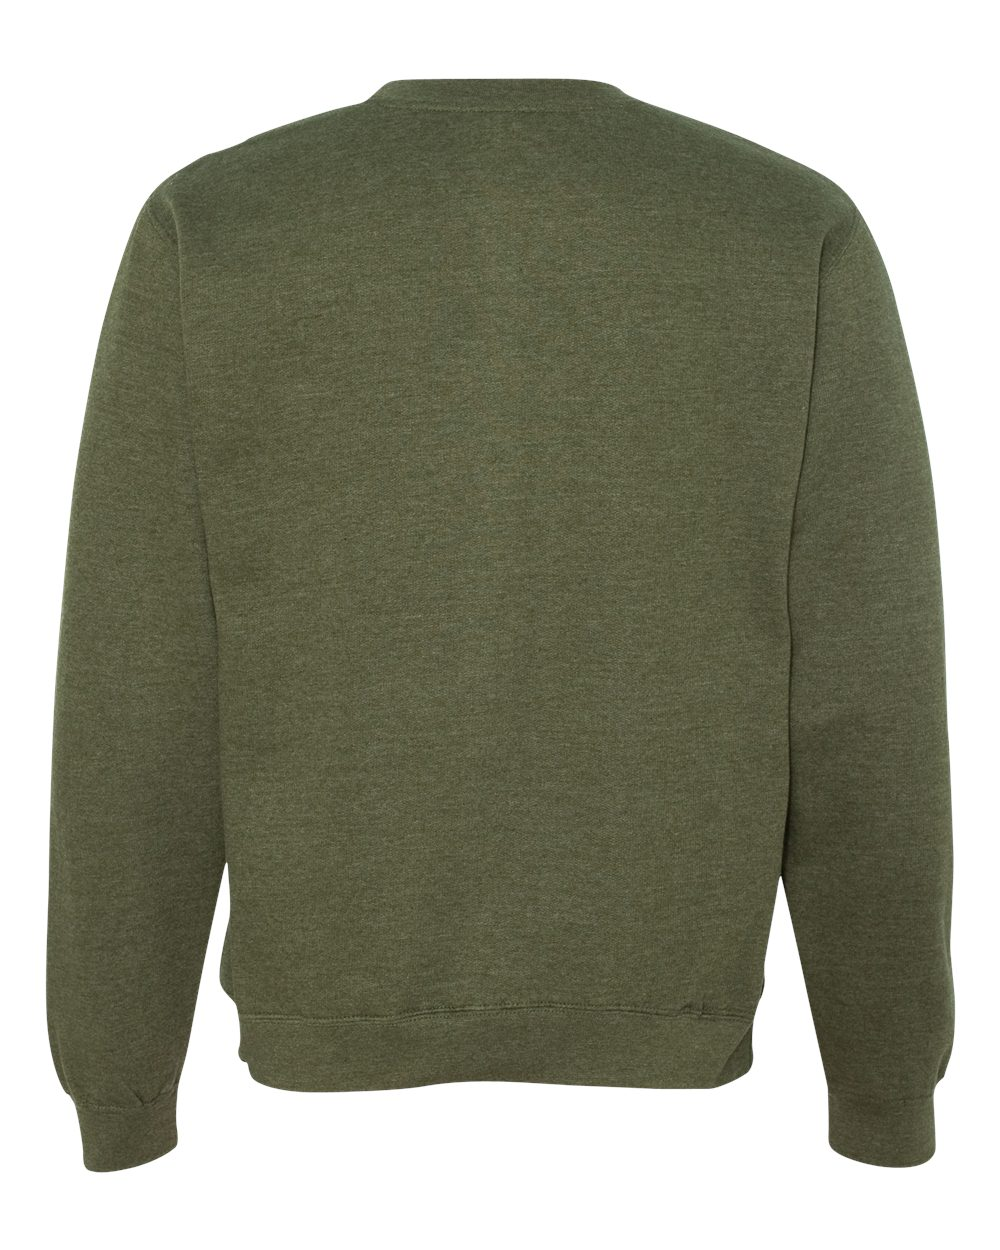 Independent-Trading-Co-Midweight-Crewneck-Sweatshirt-SS3000-up-to-3XL miniature 7